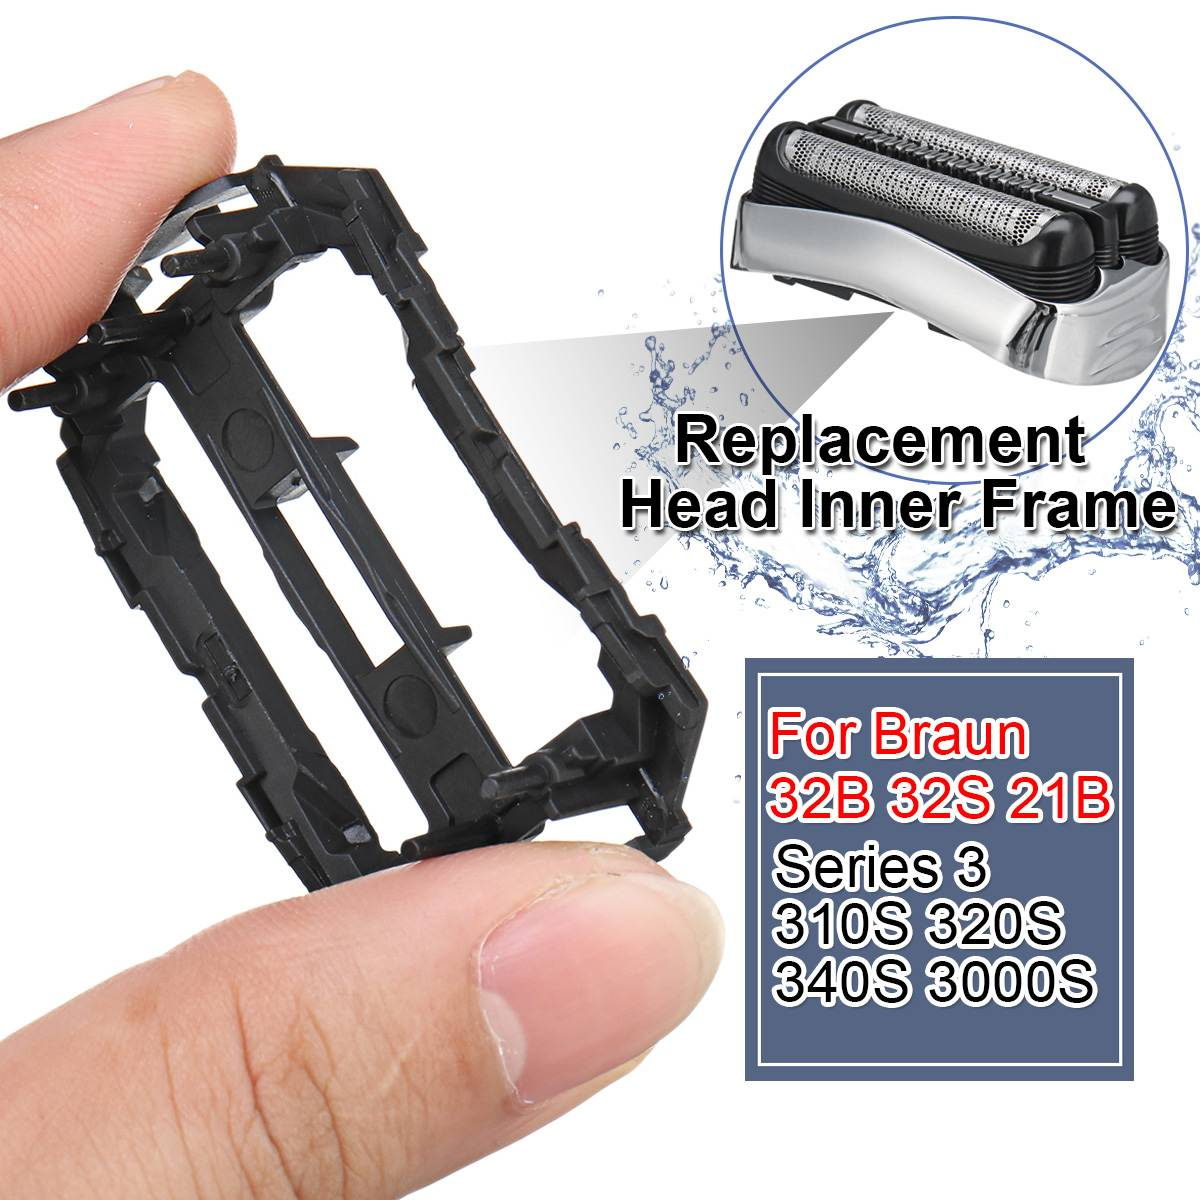 Replacement Shaver Head Inner Frame For Braun 32B 32S 21B Series 3 310S 320S 340S 3000S Electric Shaver Razor Parts